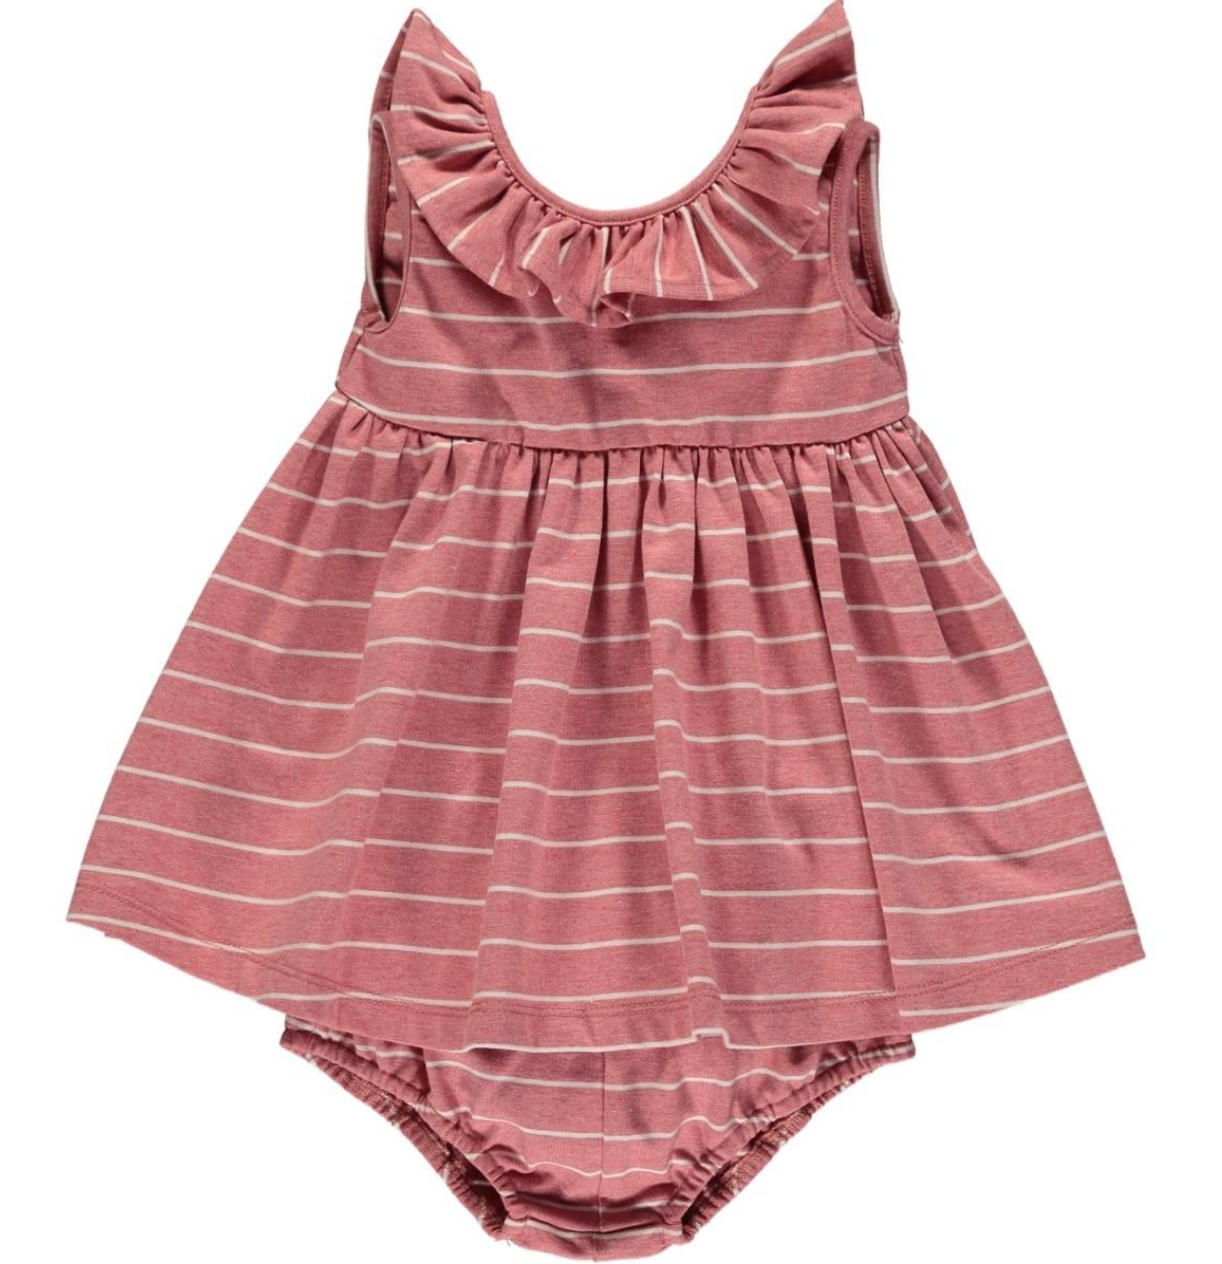 Vignette Vignette | Bella Baby Set in Cherry